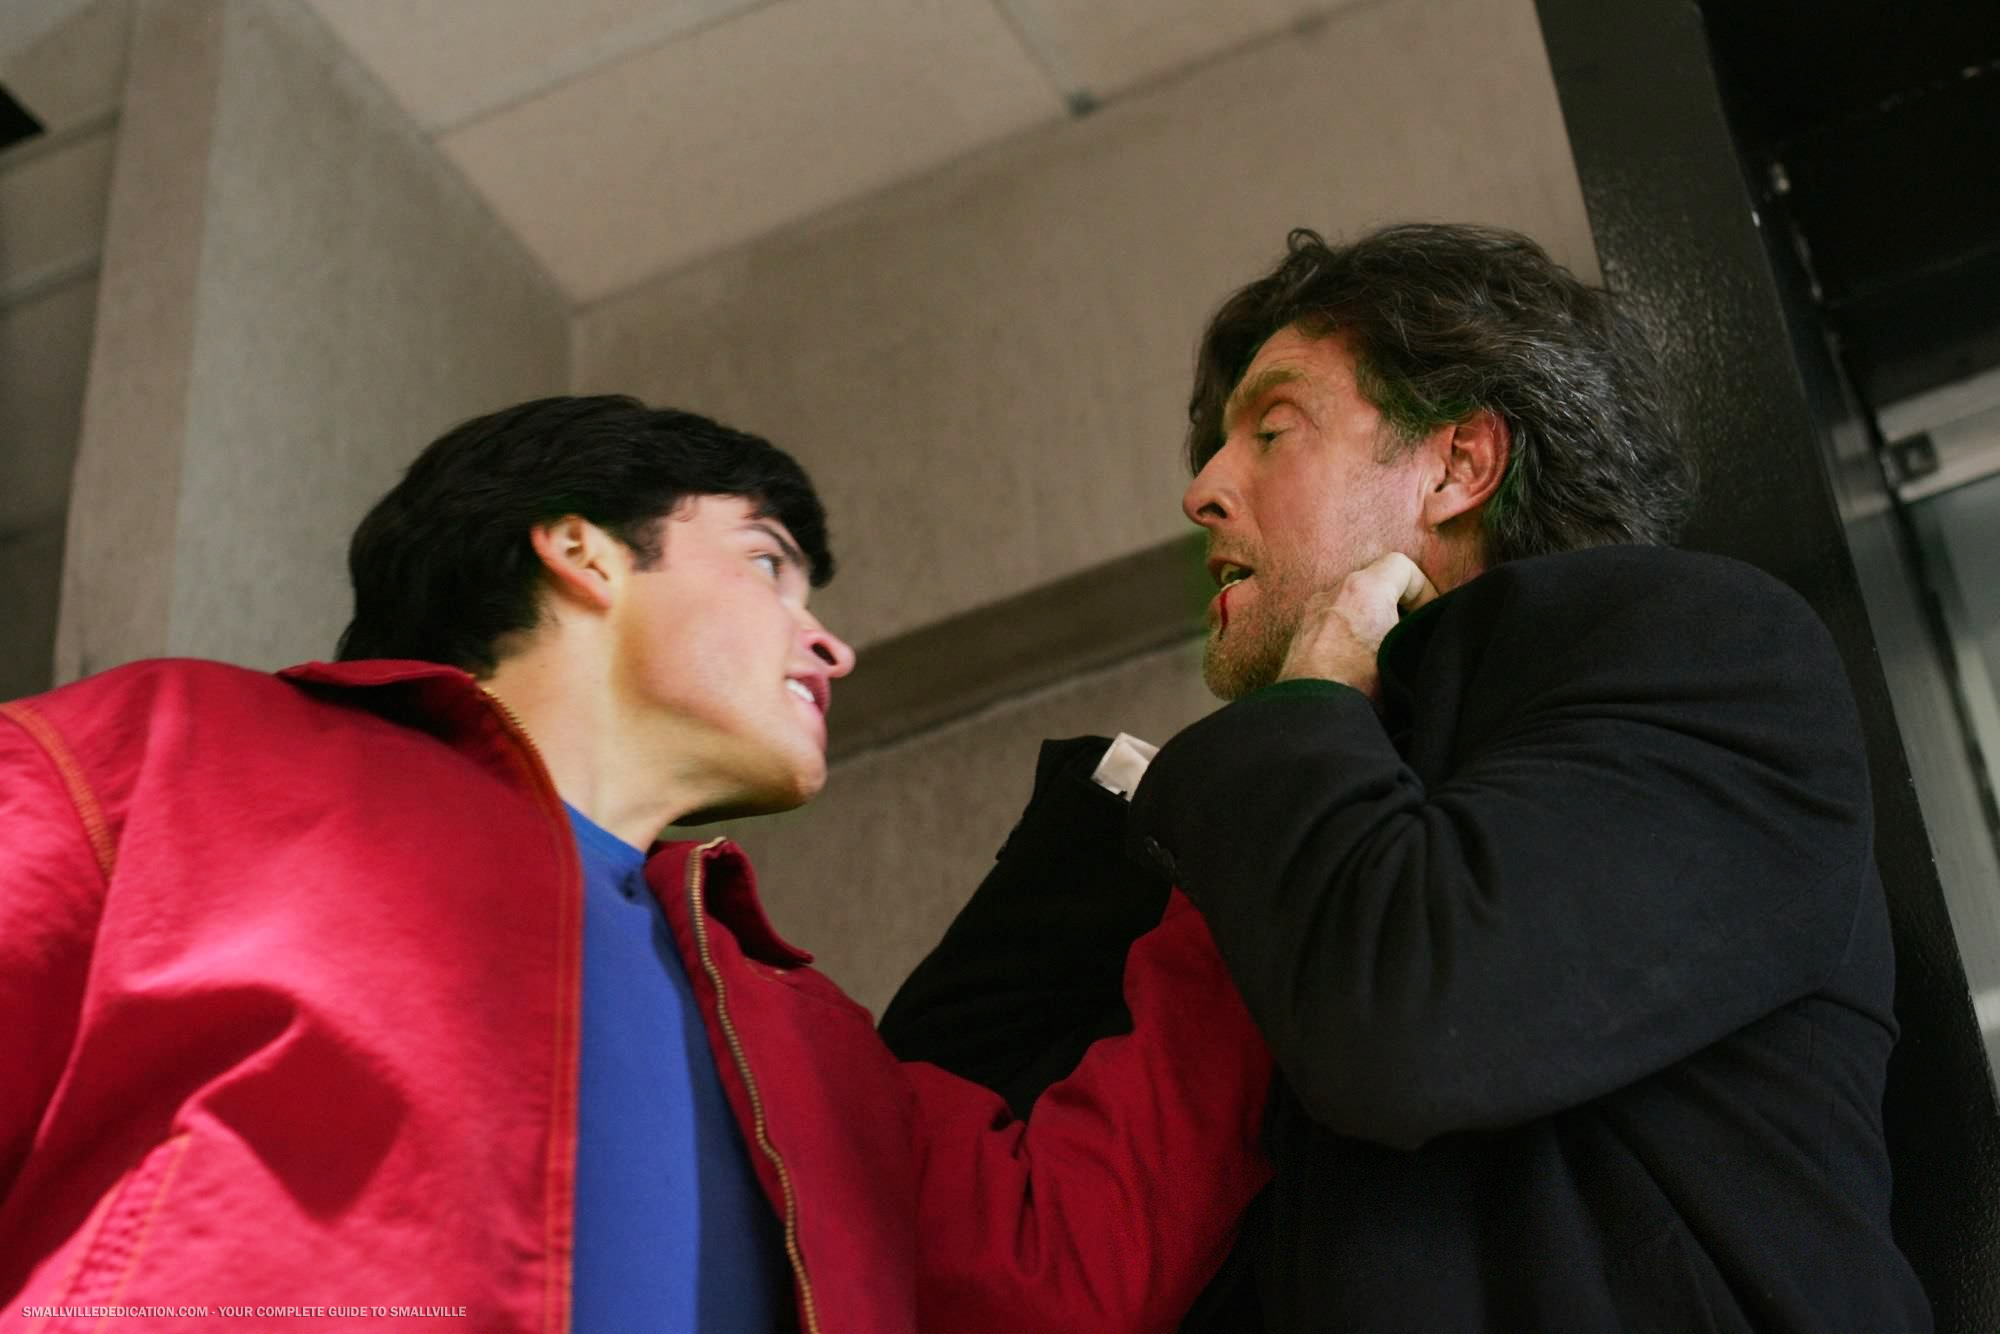 Smallville (TV Series) Episode: Phantom